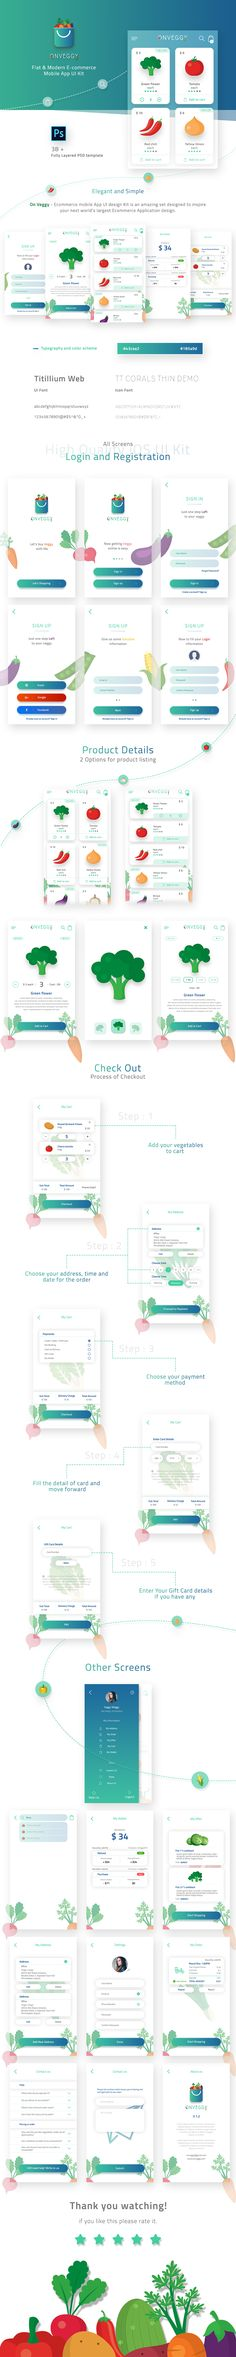 Buy On Veggy - Multipurpose E-commerce App UI Kit by Potenzaglobalsolutions on GraphicRiver. On Veggy – Ecommerce mobile App UI design Kit is an amazing set designed to inspire your next world's largest E-comme. Mobile Ui Design, App Ui Design, Interface Design, Flat Design, User Interface, Ui Kit, Photoshop, Module Design, Ecommerce App